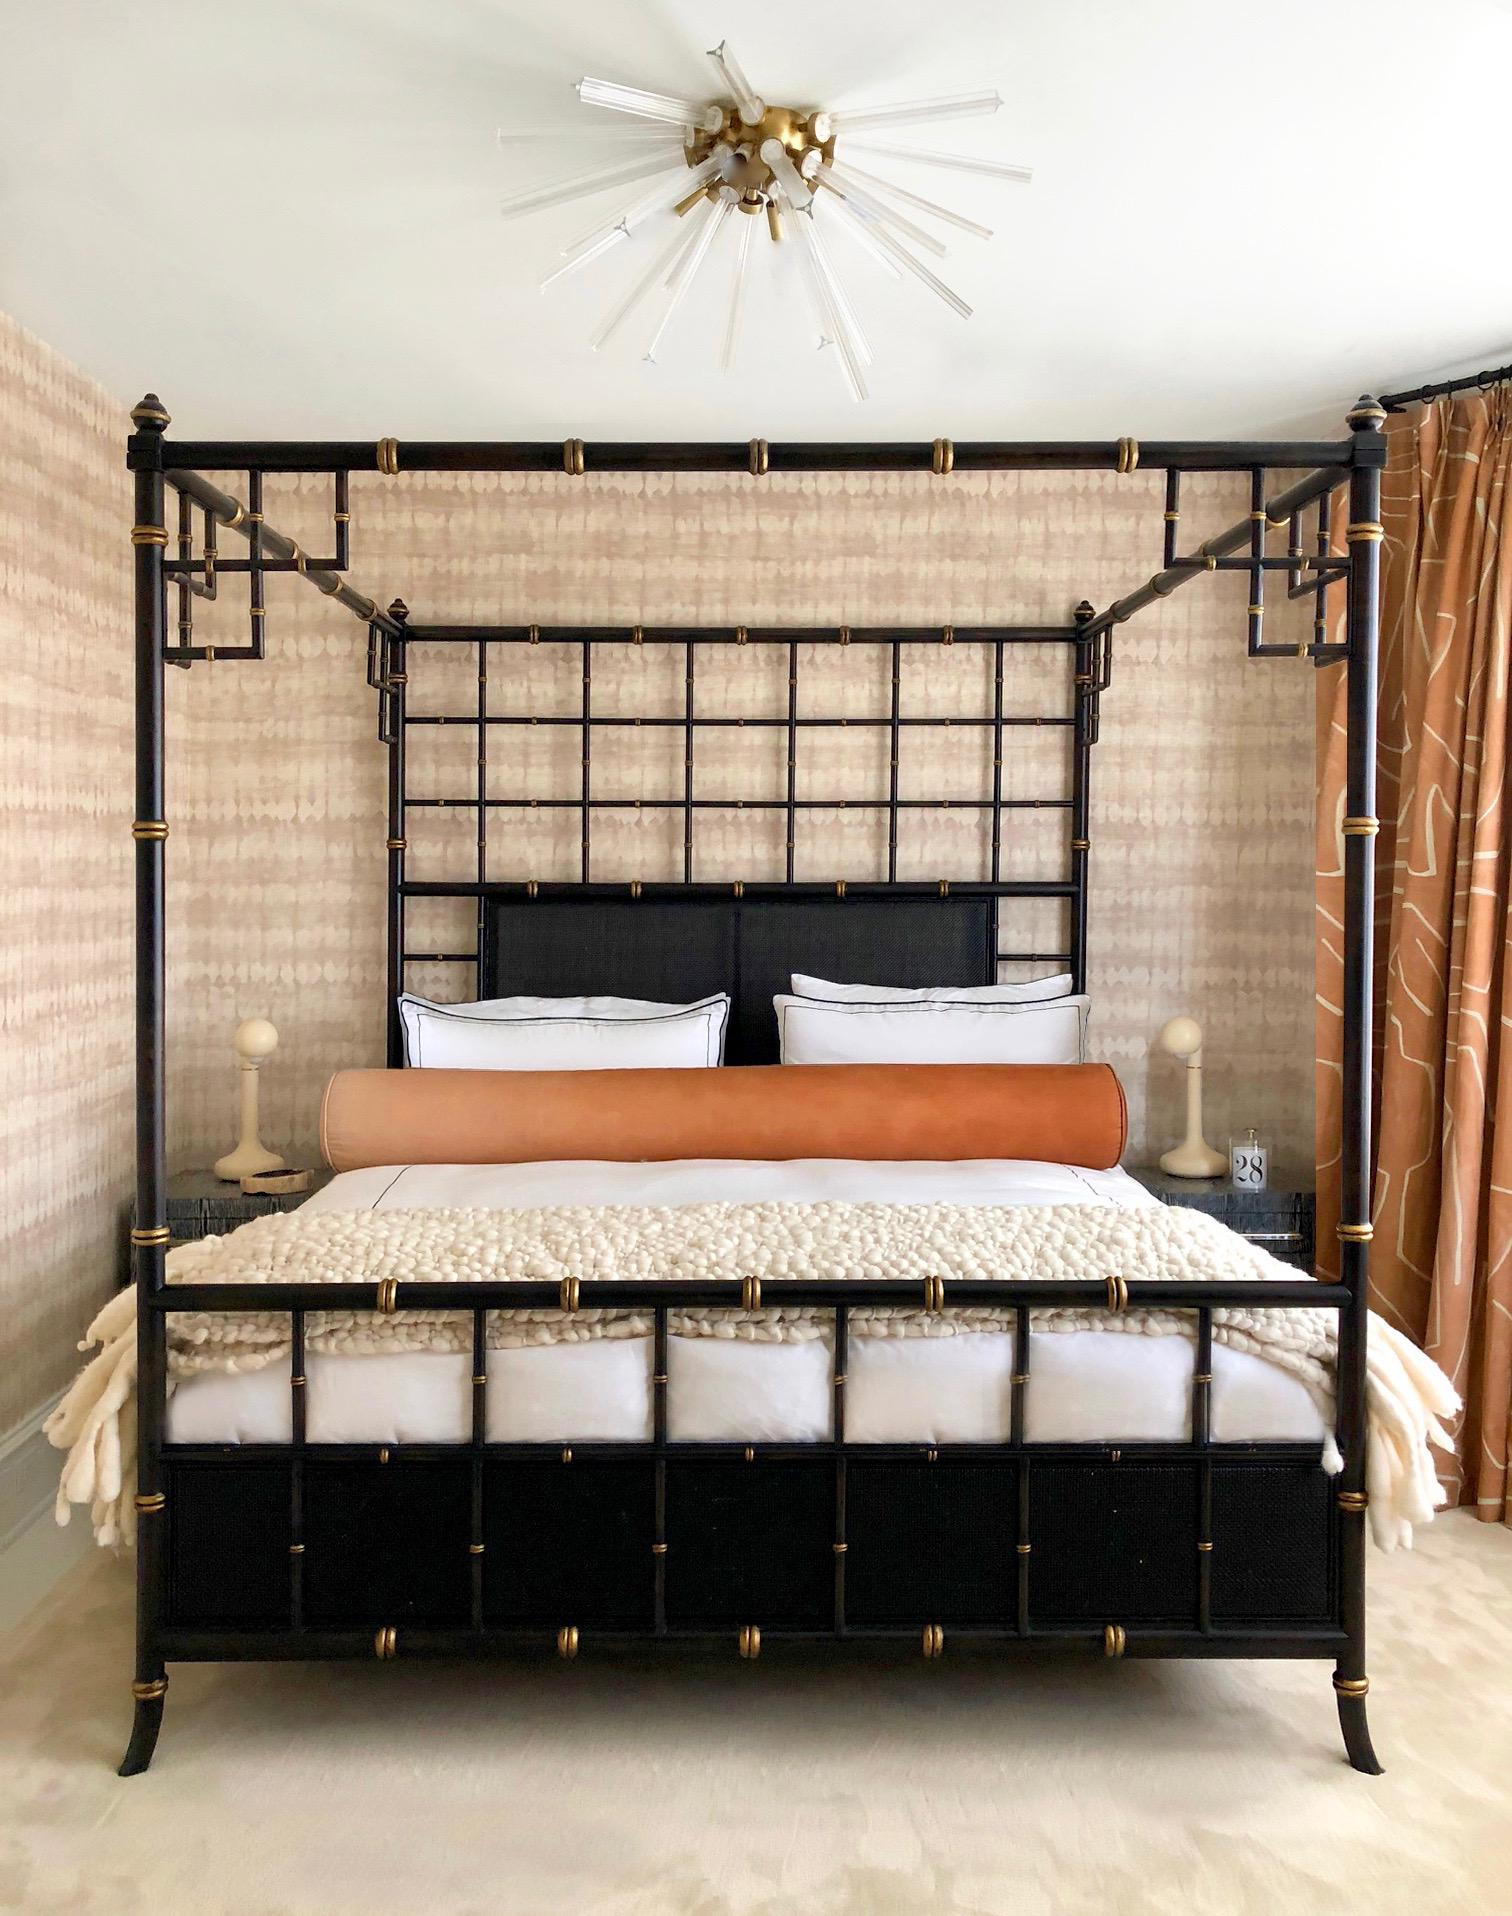 Deal, NJ Victorian Summer Home Bedroom Contemporary By Cara Woodhouse  Interiors LLC